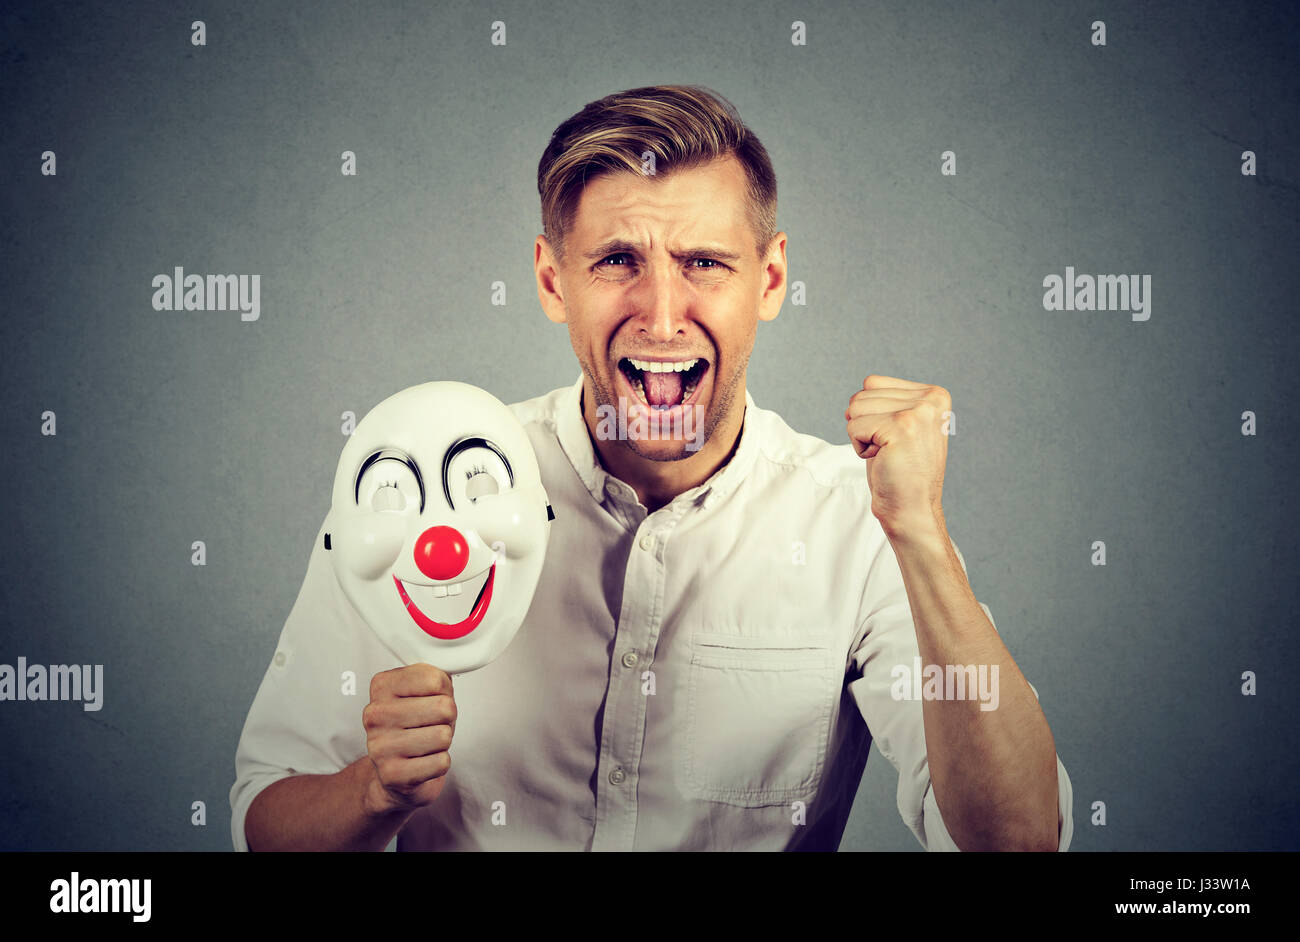 Portrait young upset angry screaming man holding a clown mask expressing cheerfulness happiness isolated on gray Stock Photo